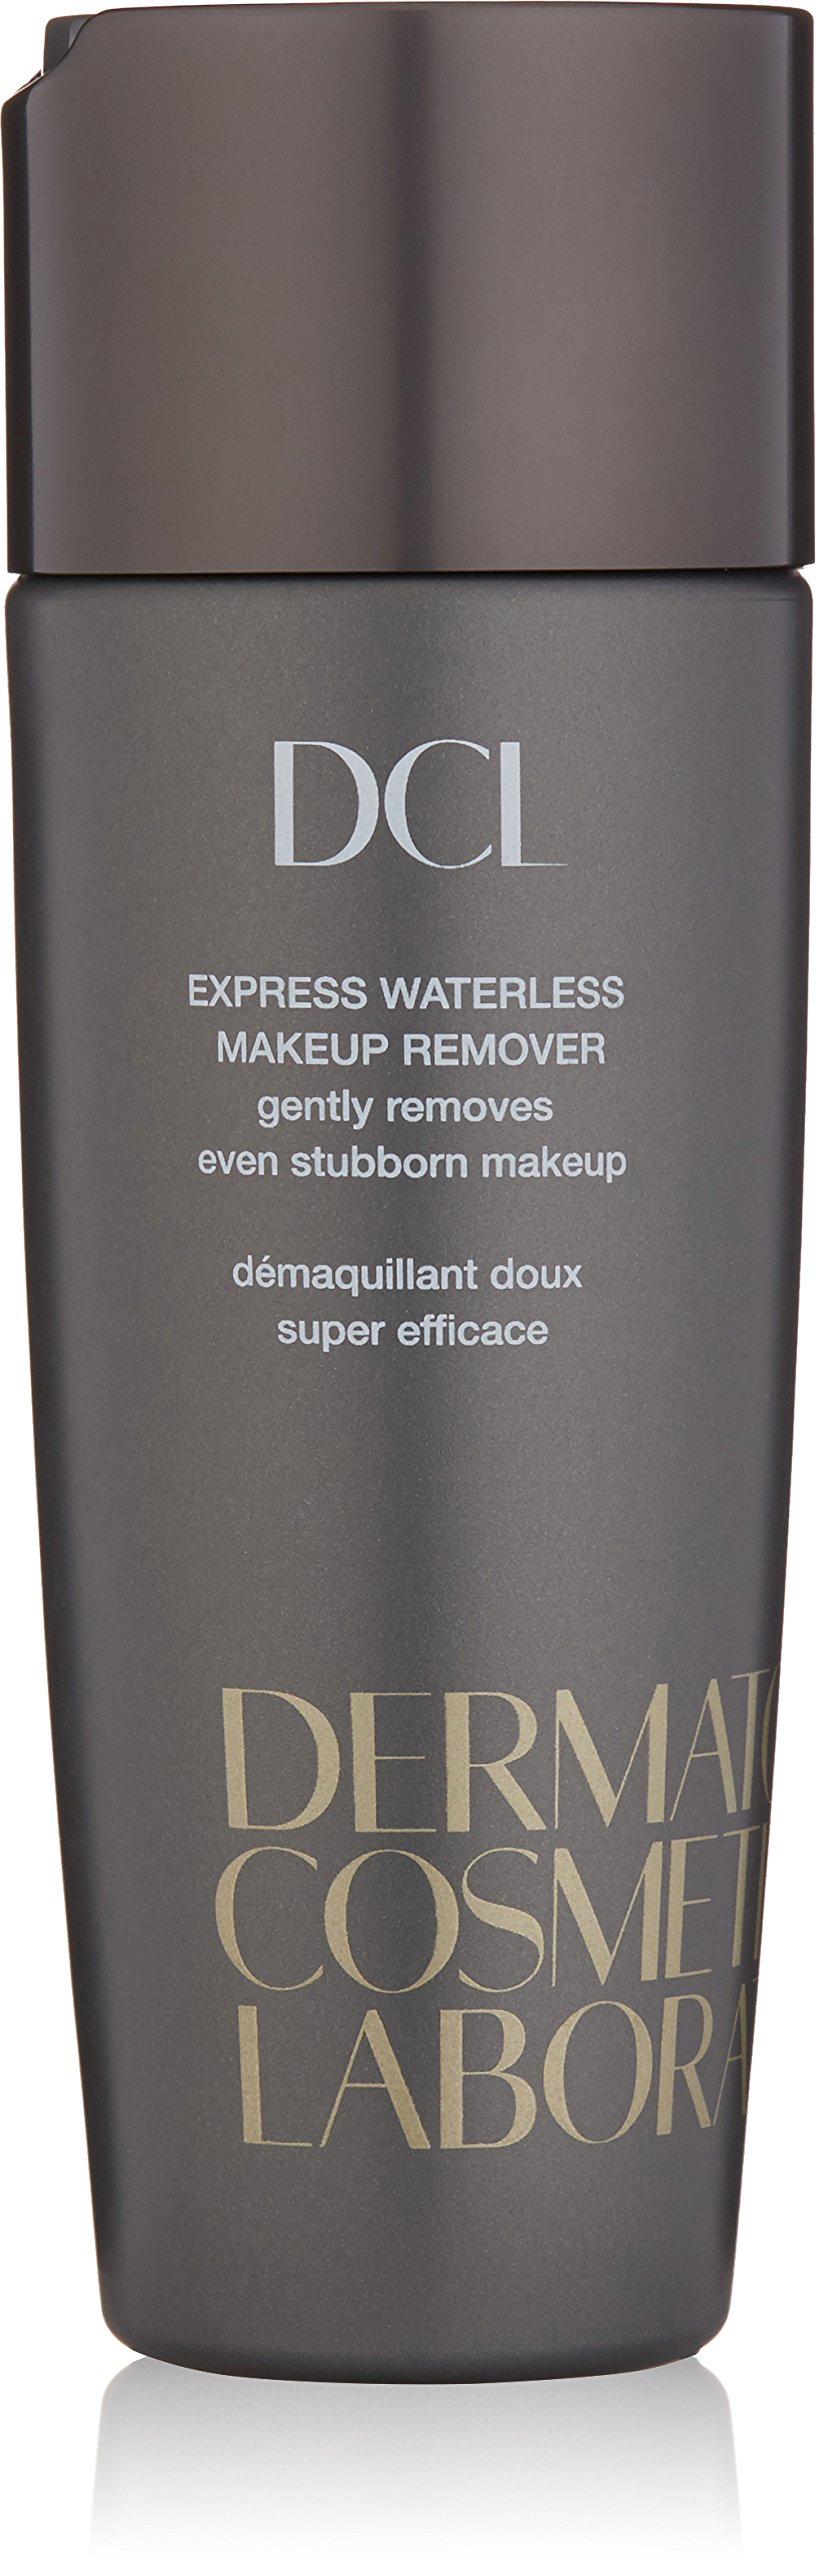 Dermatologic Cosmetic Laboratories Express Waterless Makeup Remover, 5.1 fl. oz.